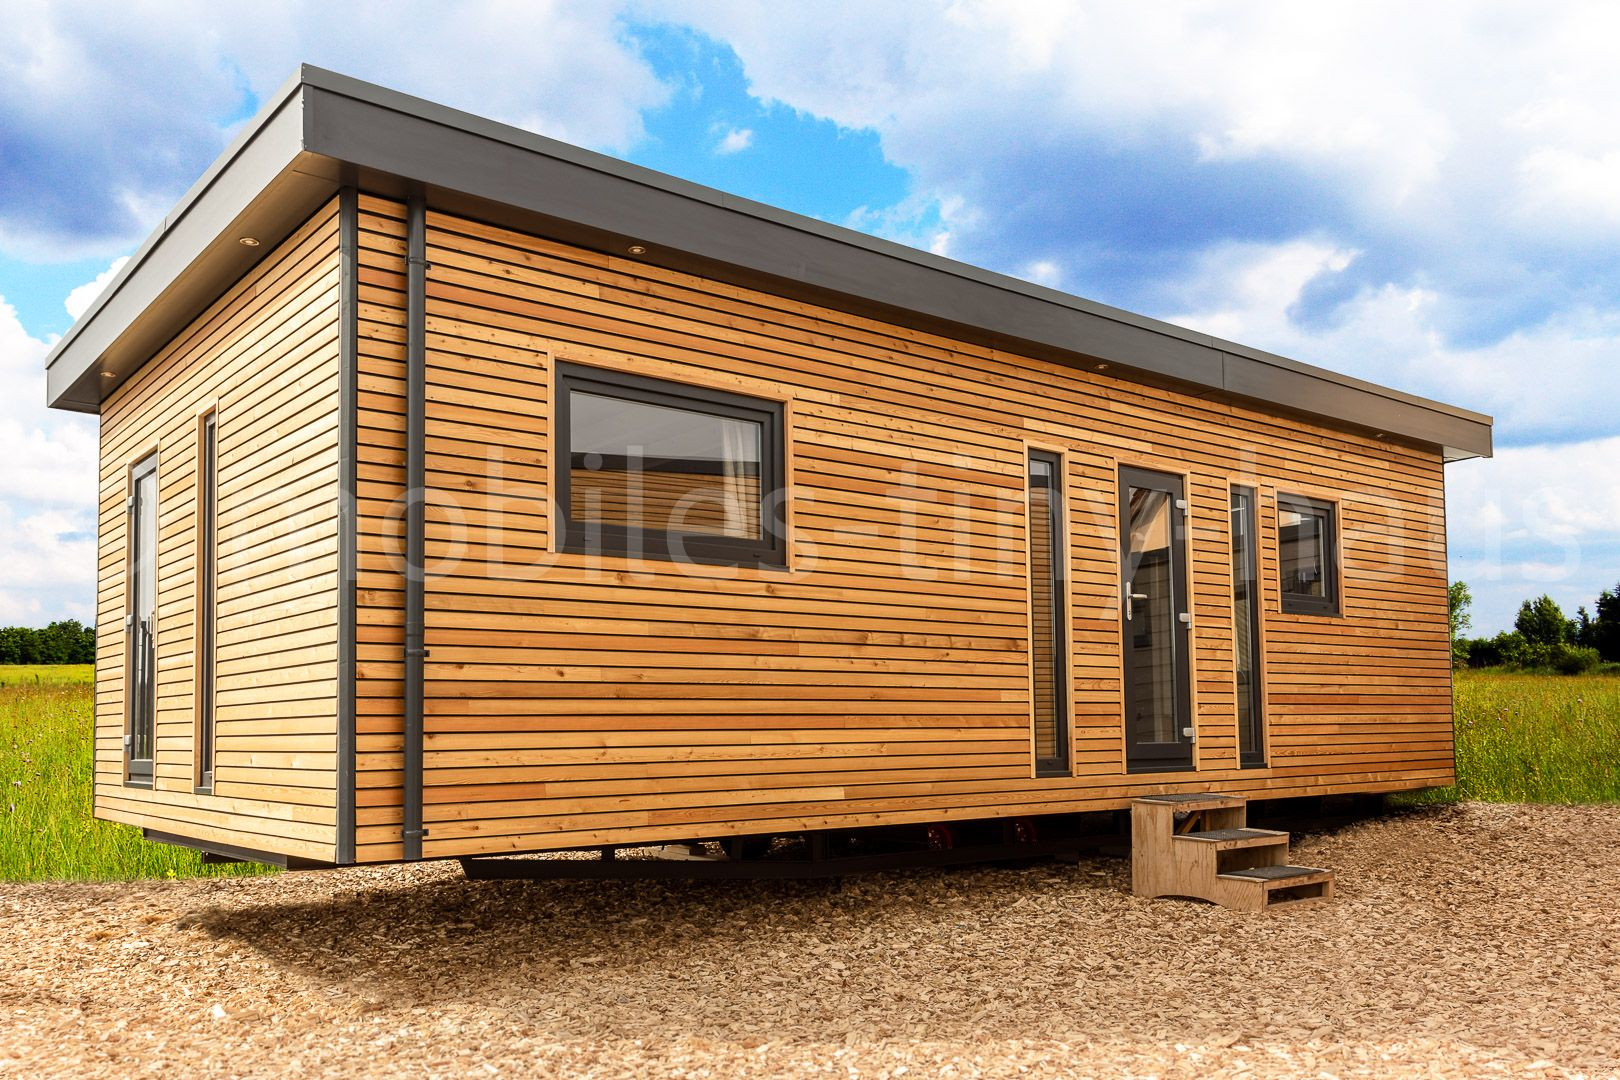 Mobiles Chalet Canada Unser Highlight ?? Mobiles haus